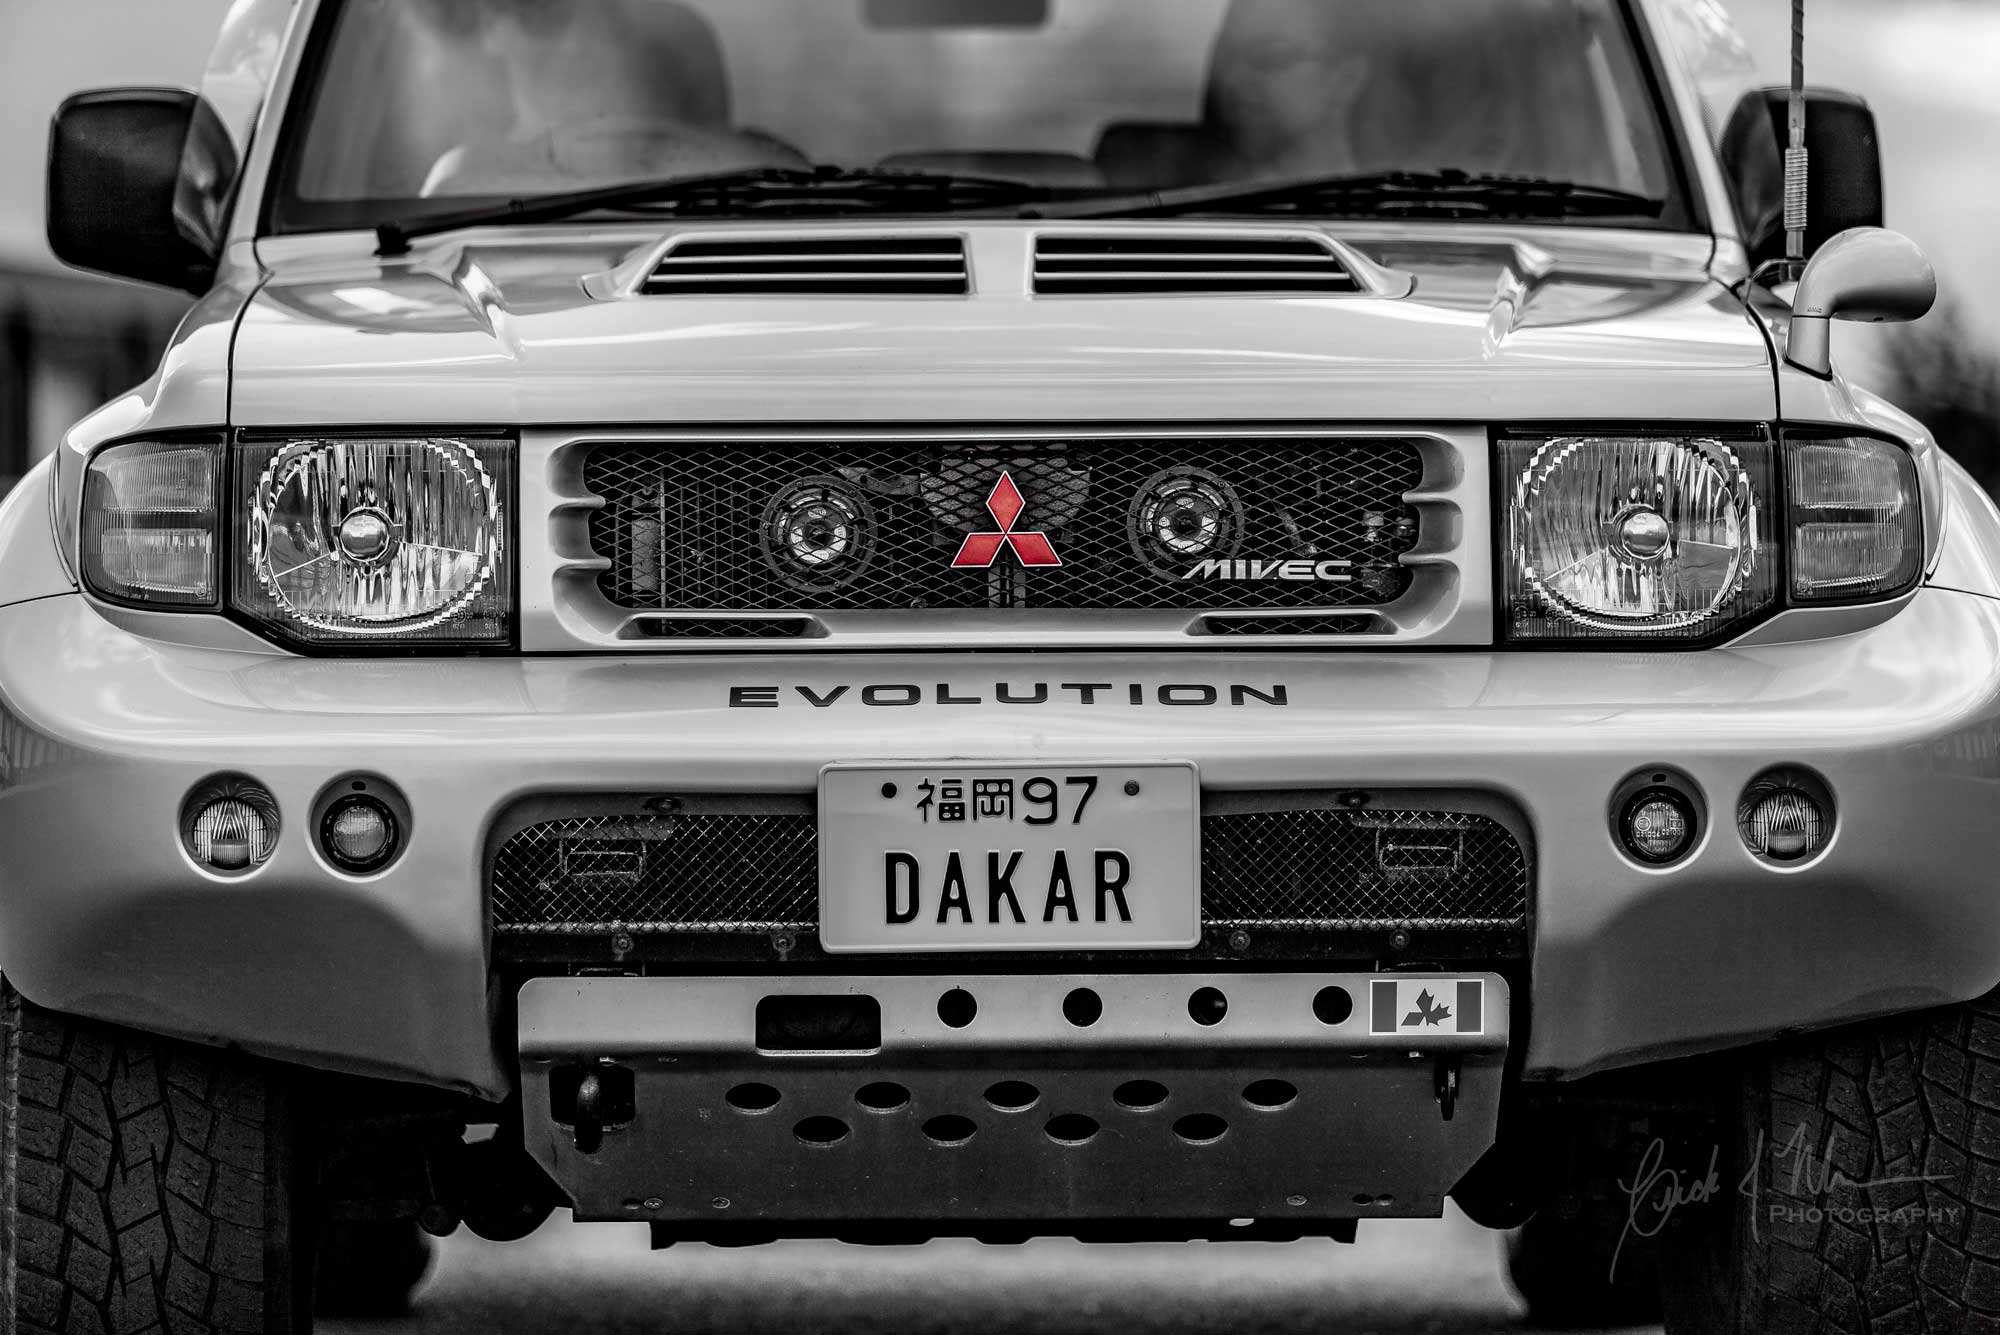 Pajero Evolution front